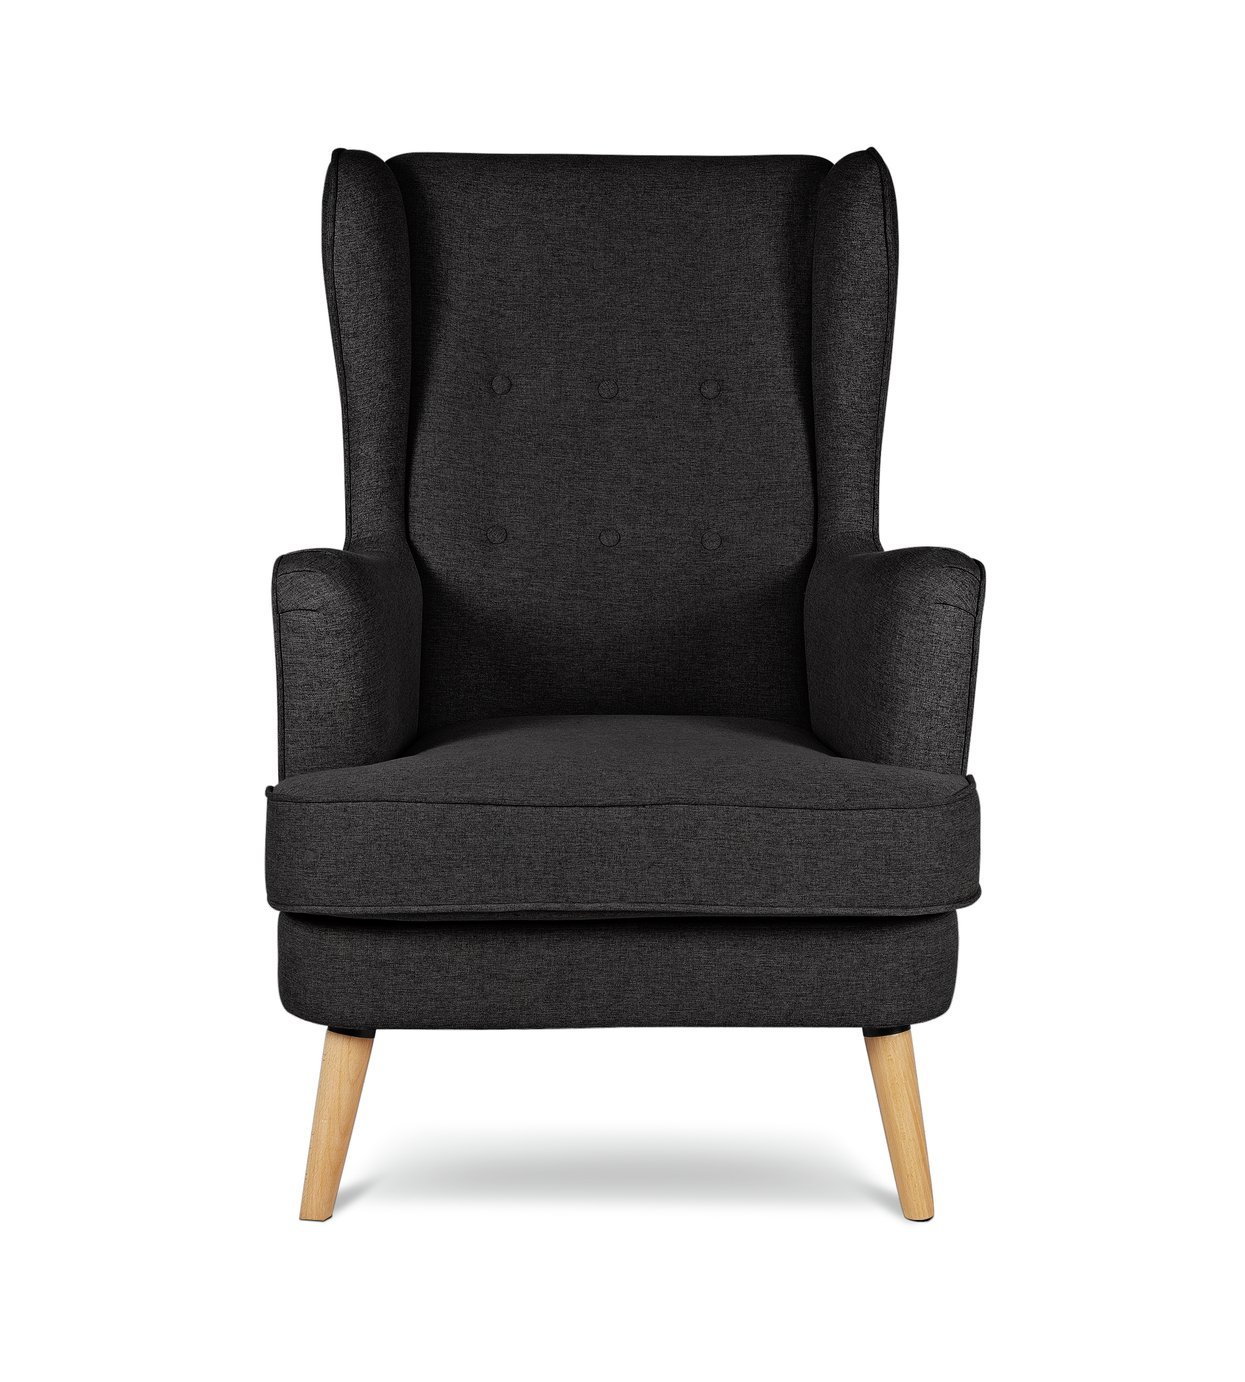 Buy Argos Home Callie Fabric Wingback Chair   Charcoal | Armchairs And  Chairs | Argos